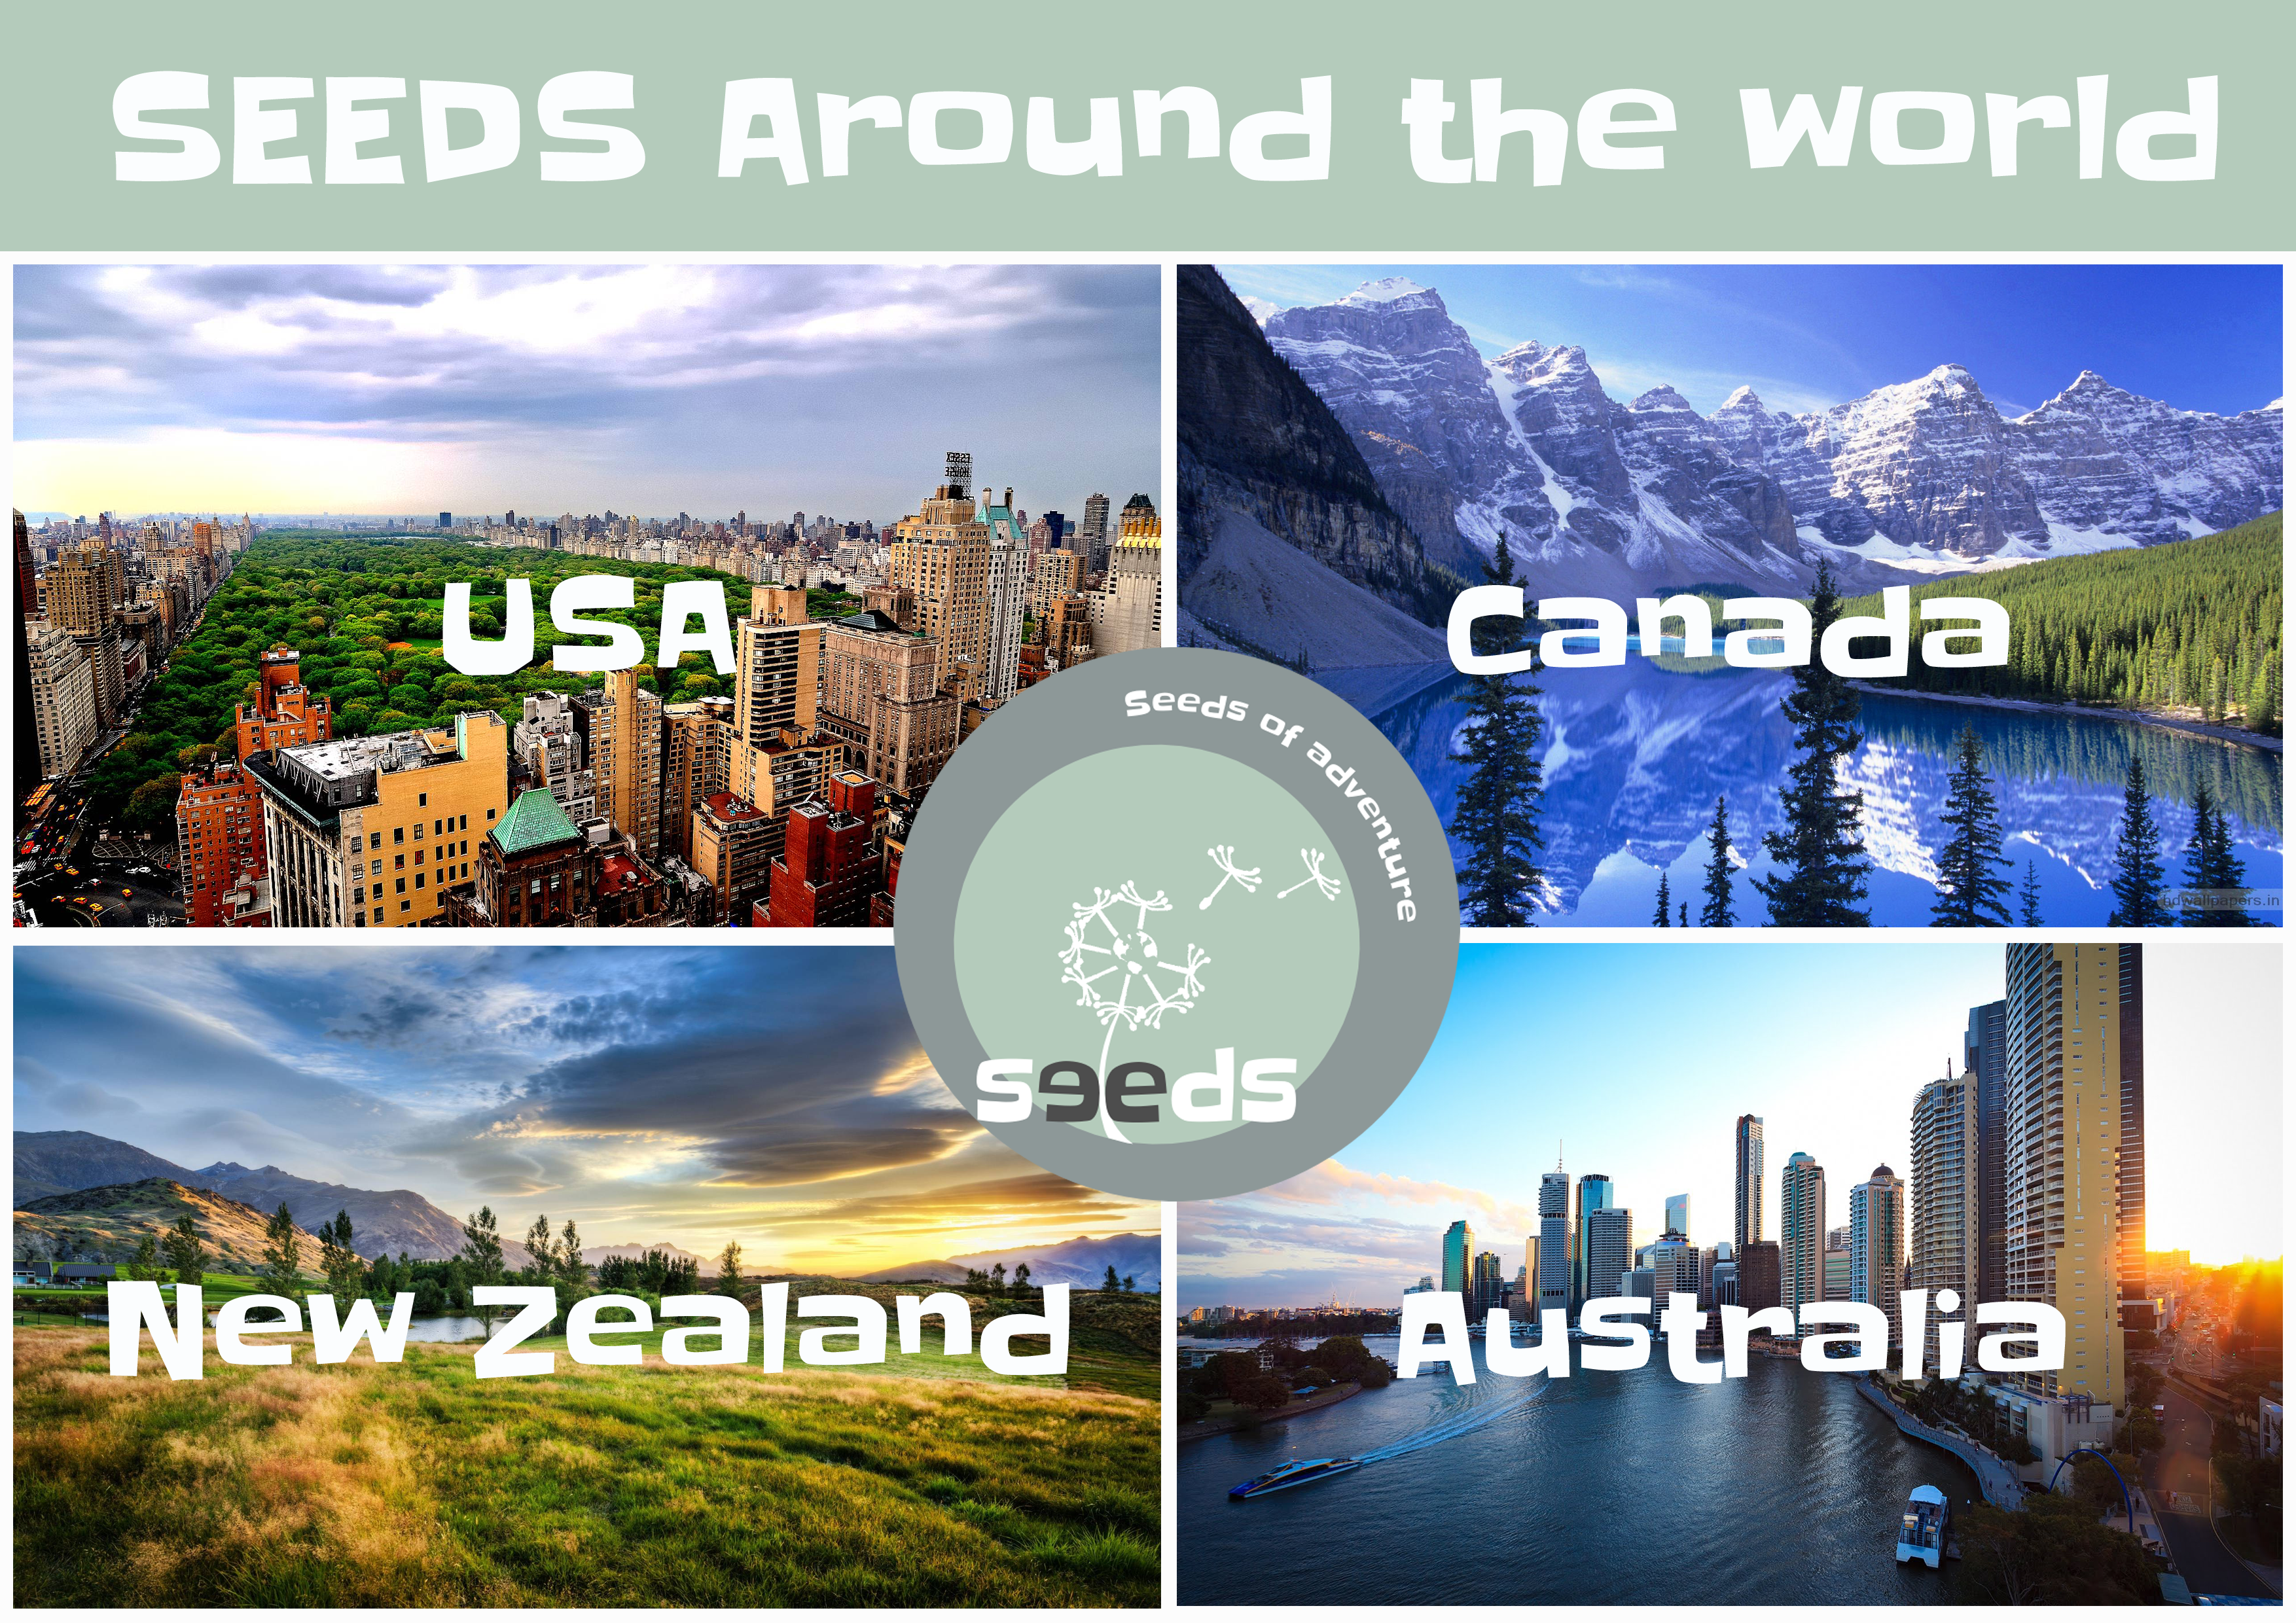 Seeds around the world